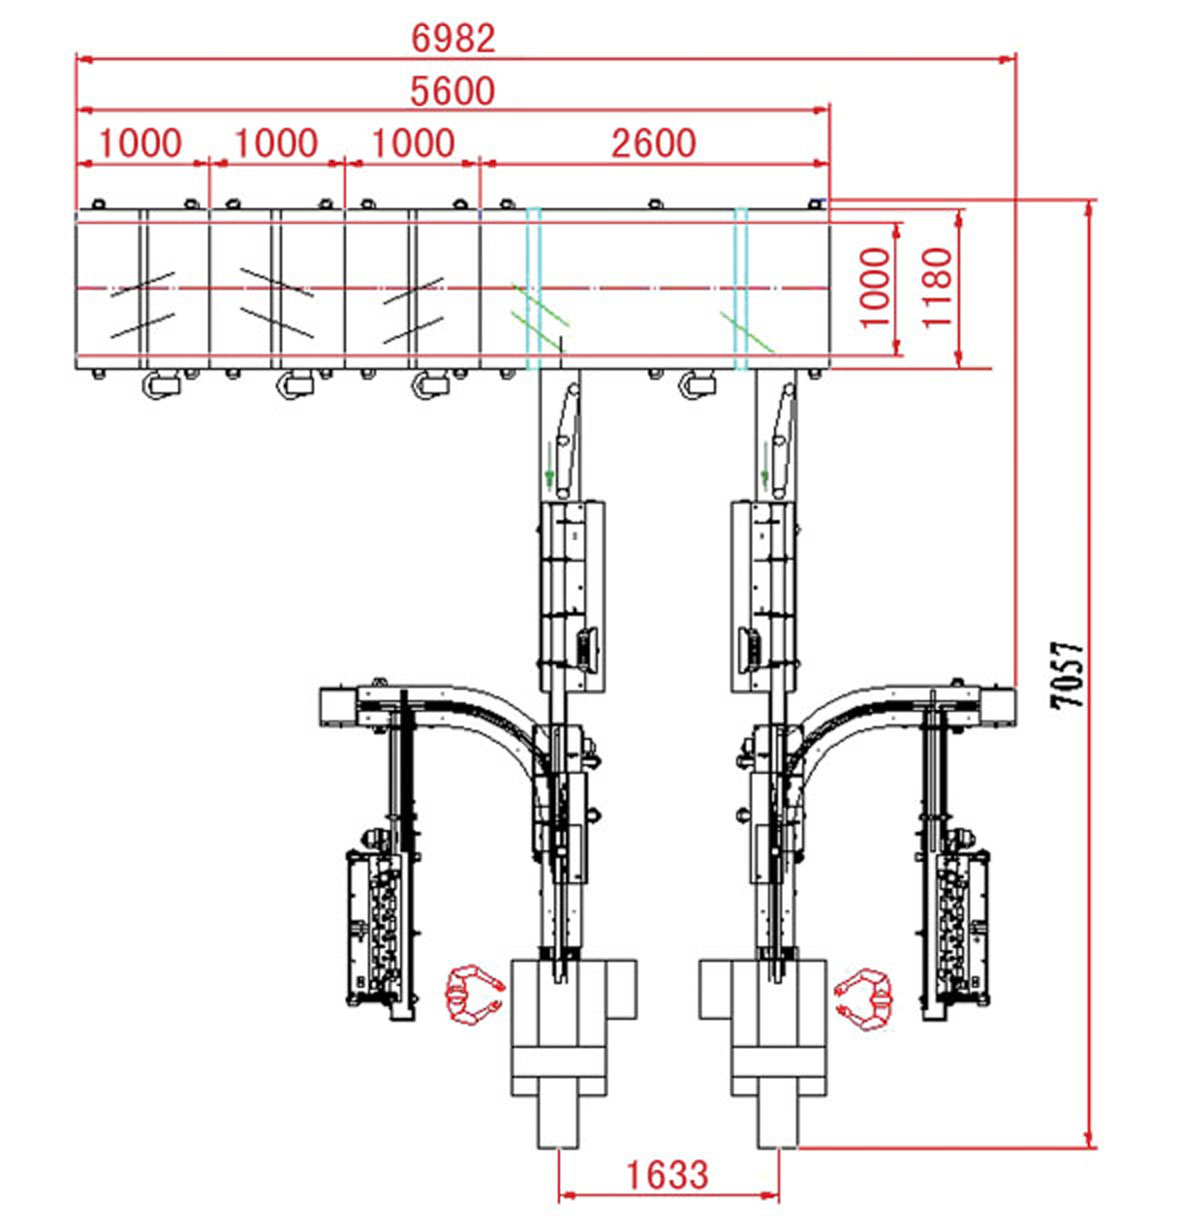 automatic tray loading and packaging system drawing